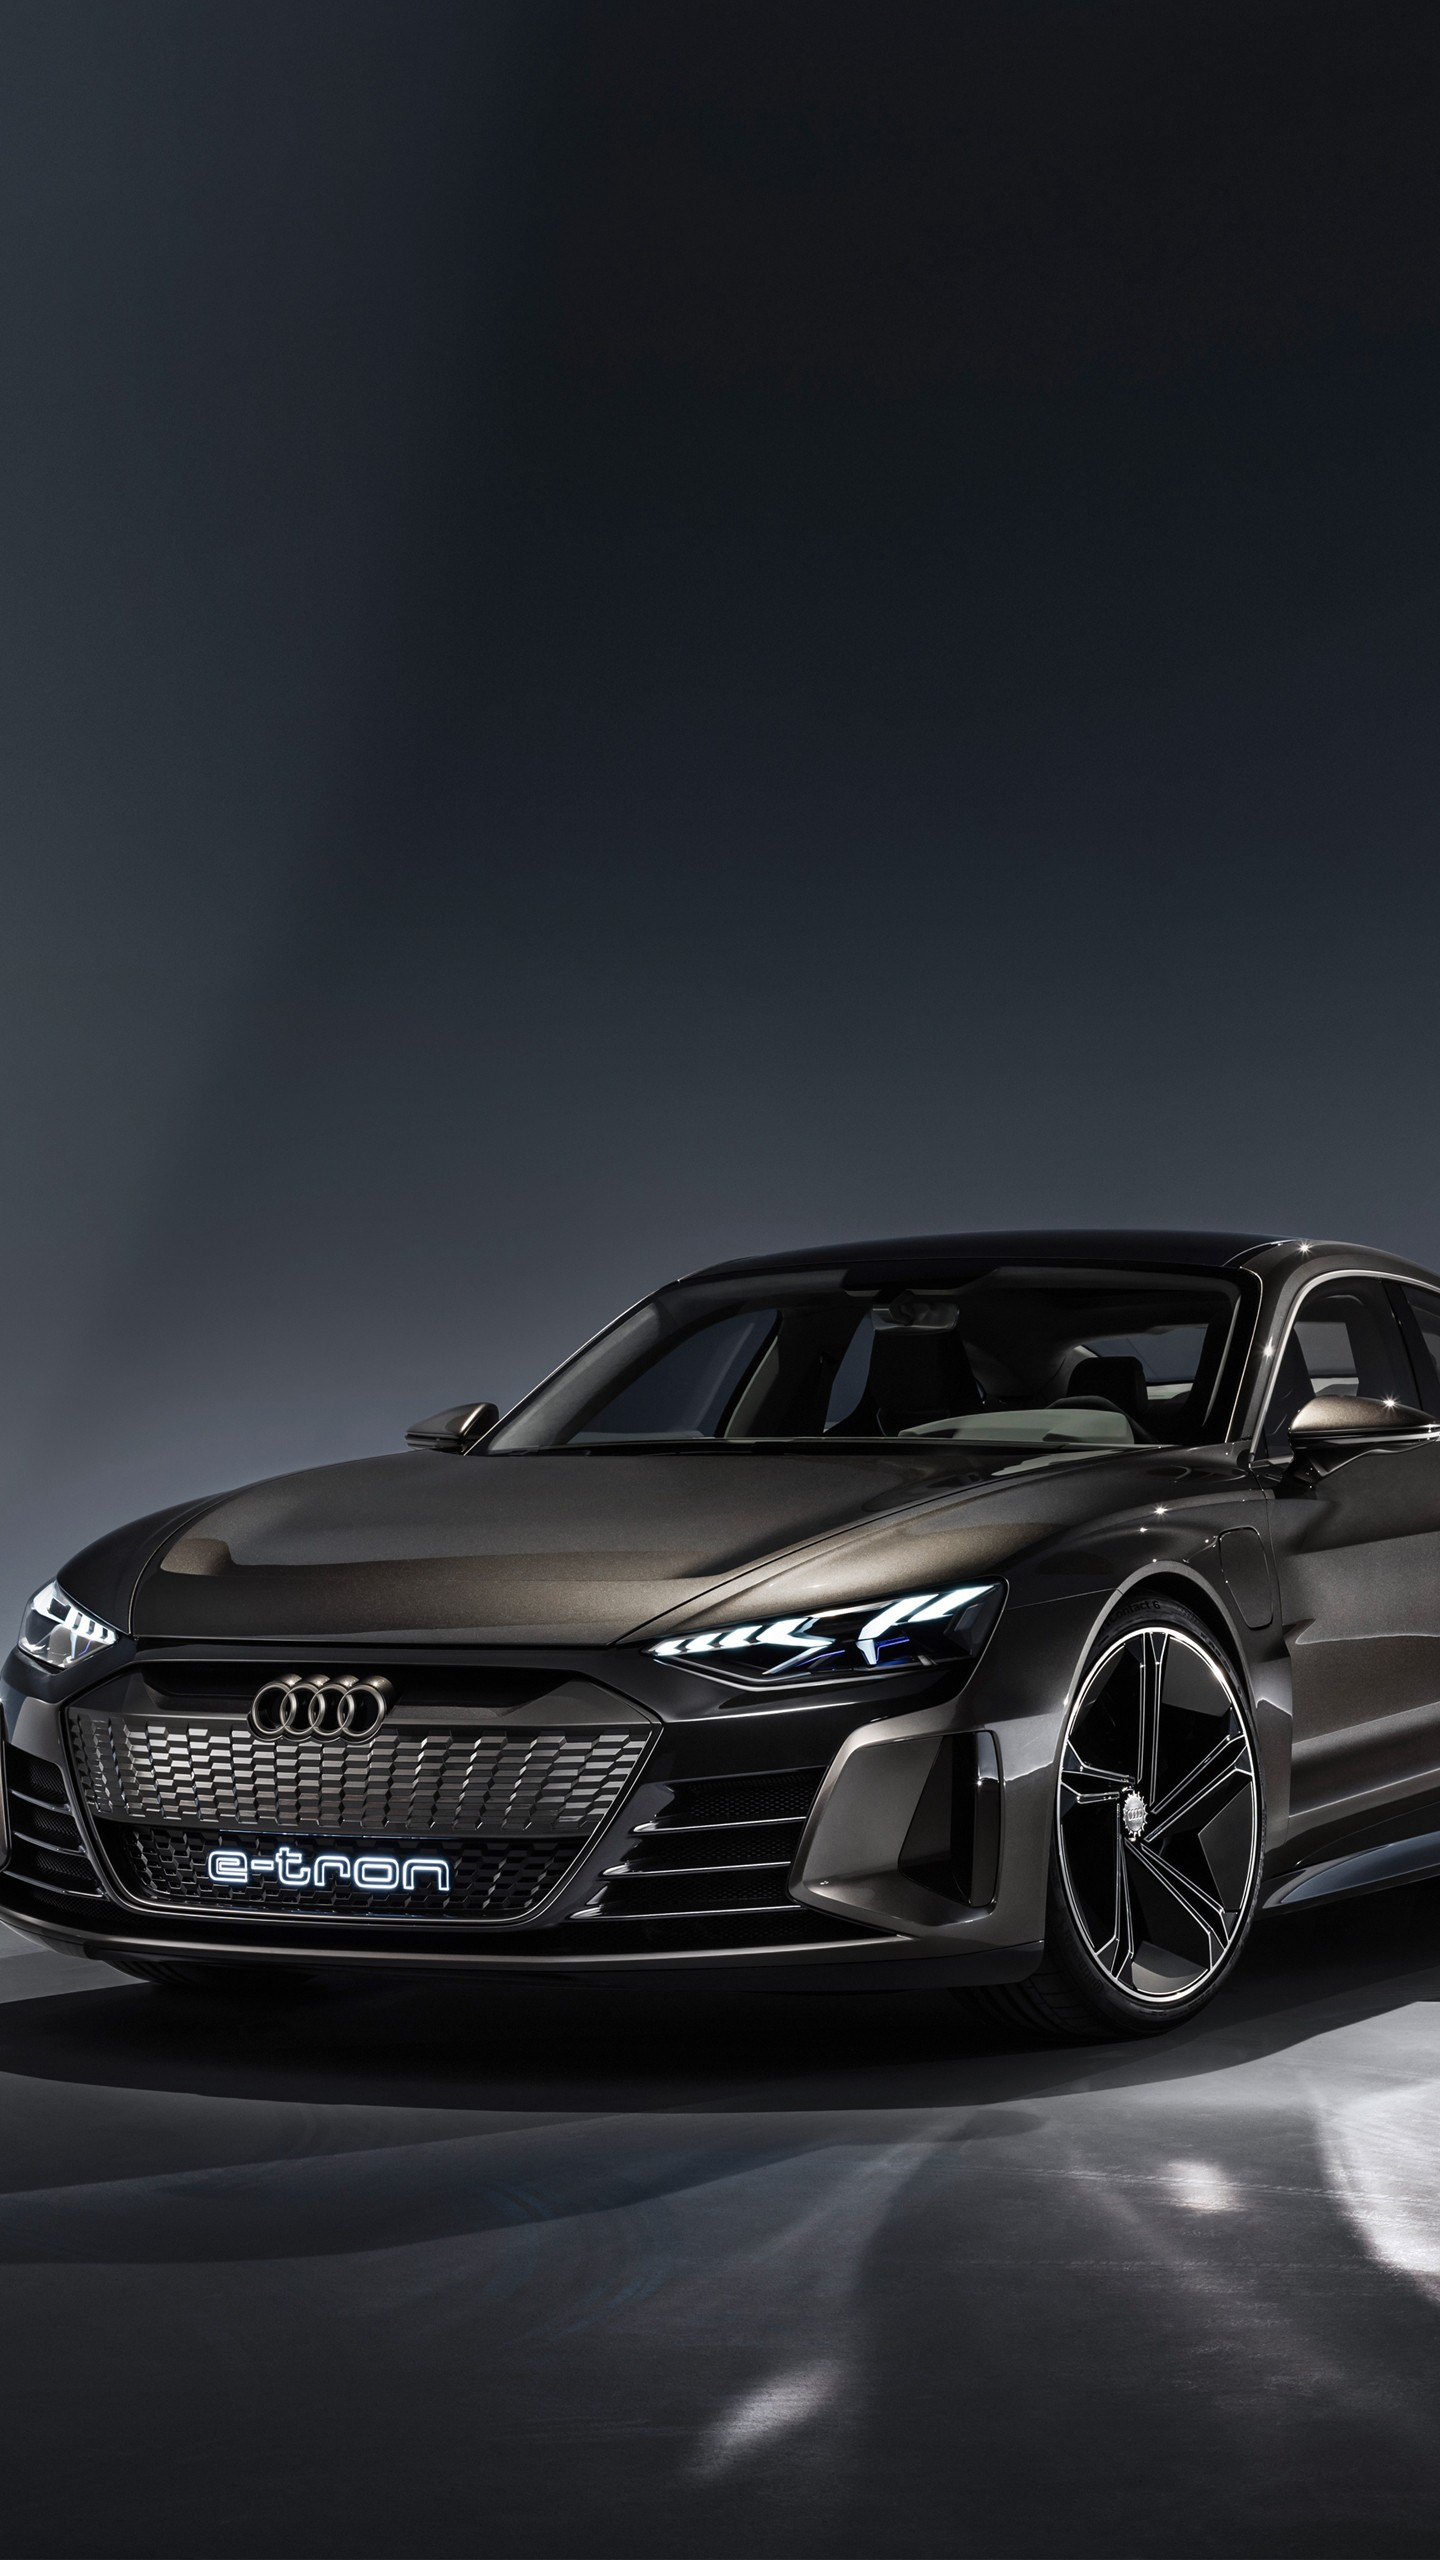 Mobiles Qhd Audi E Tron Gt Wallpaper Iphone 1958608